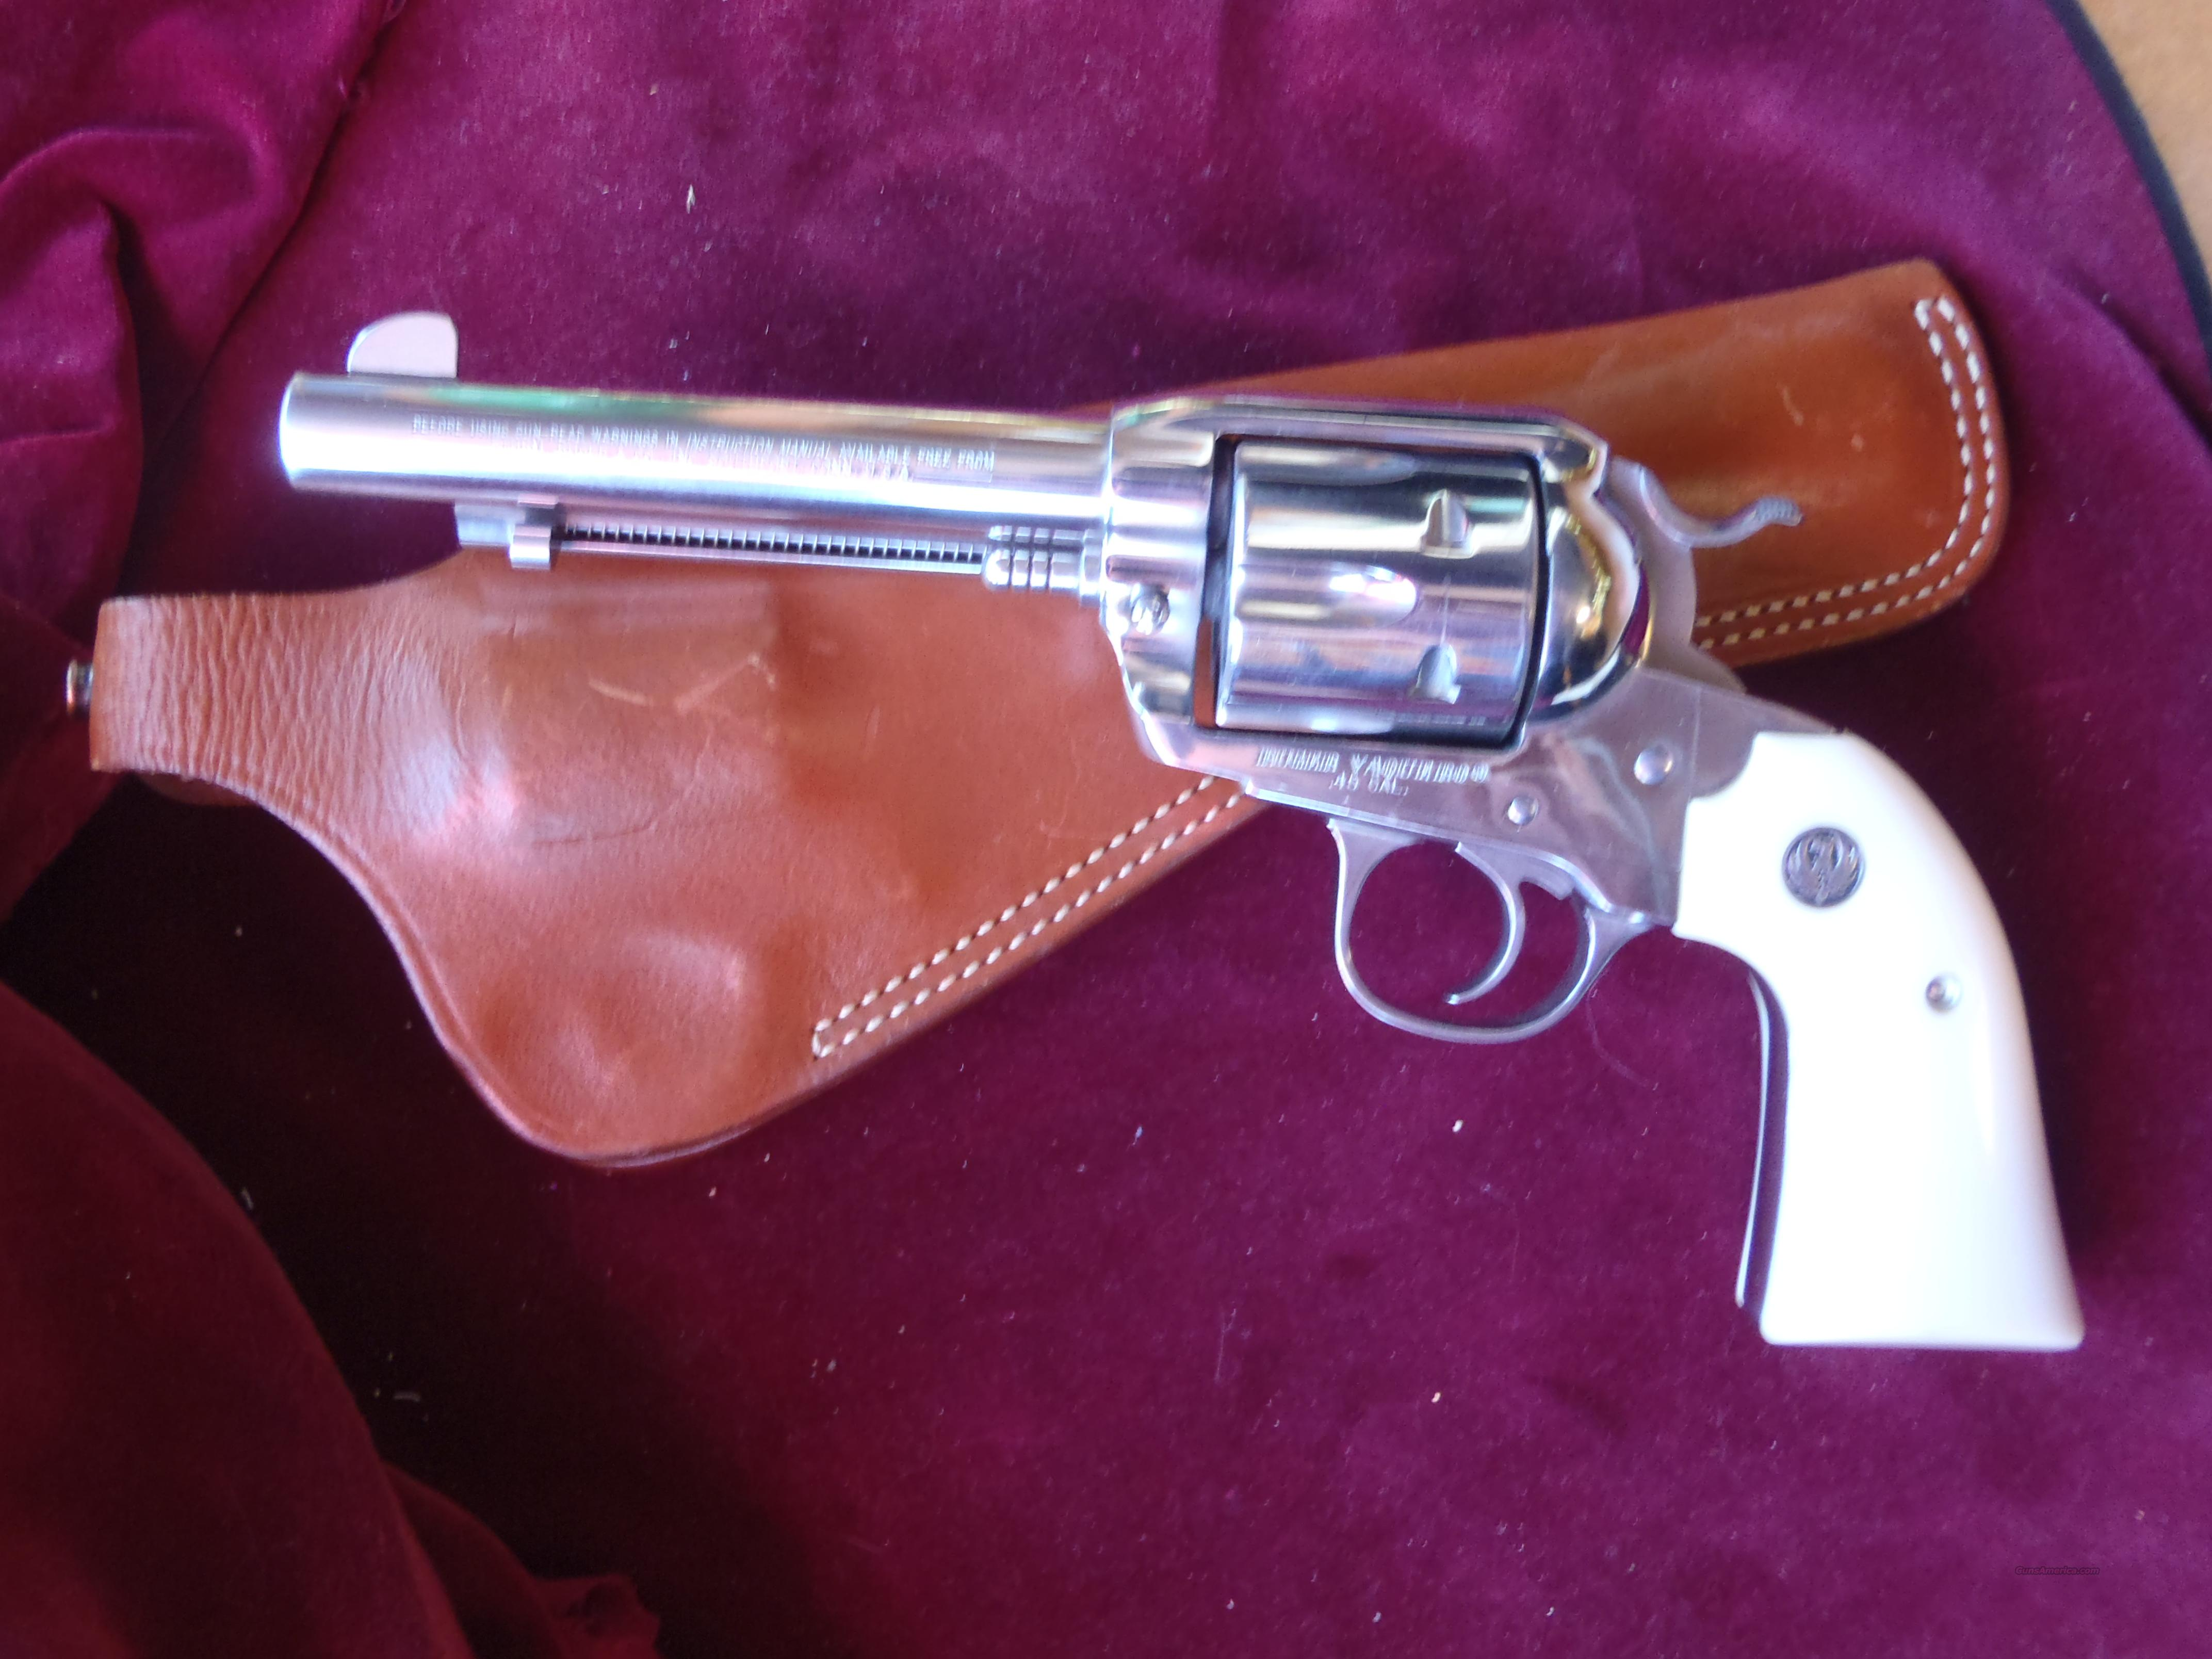 ruger vaquero 45lc 5.5 bright ss  Guns > Pistols > Ruger Single Action Revolvers > Cowboy Action